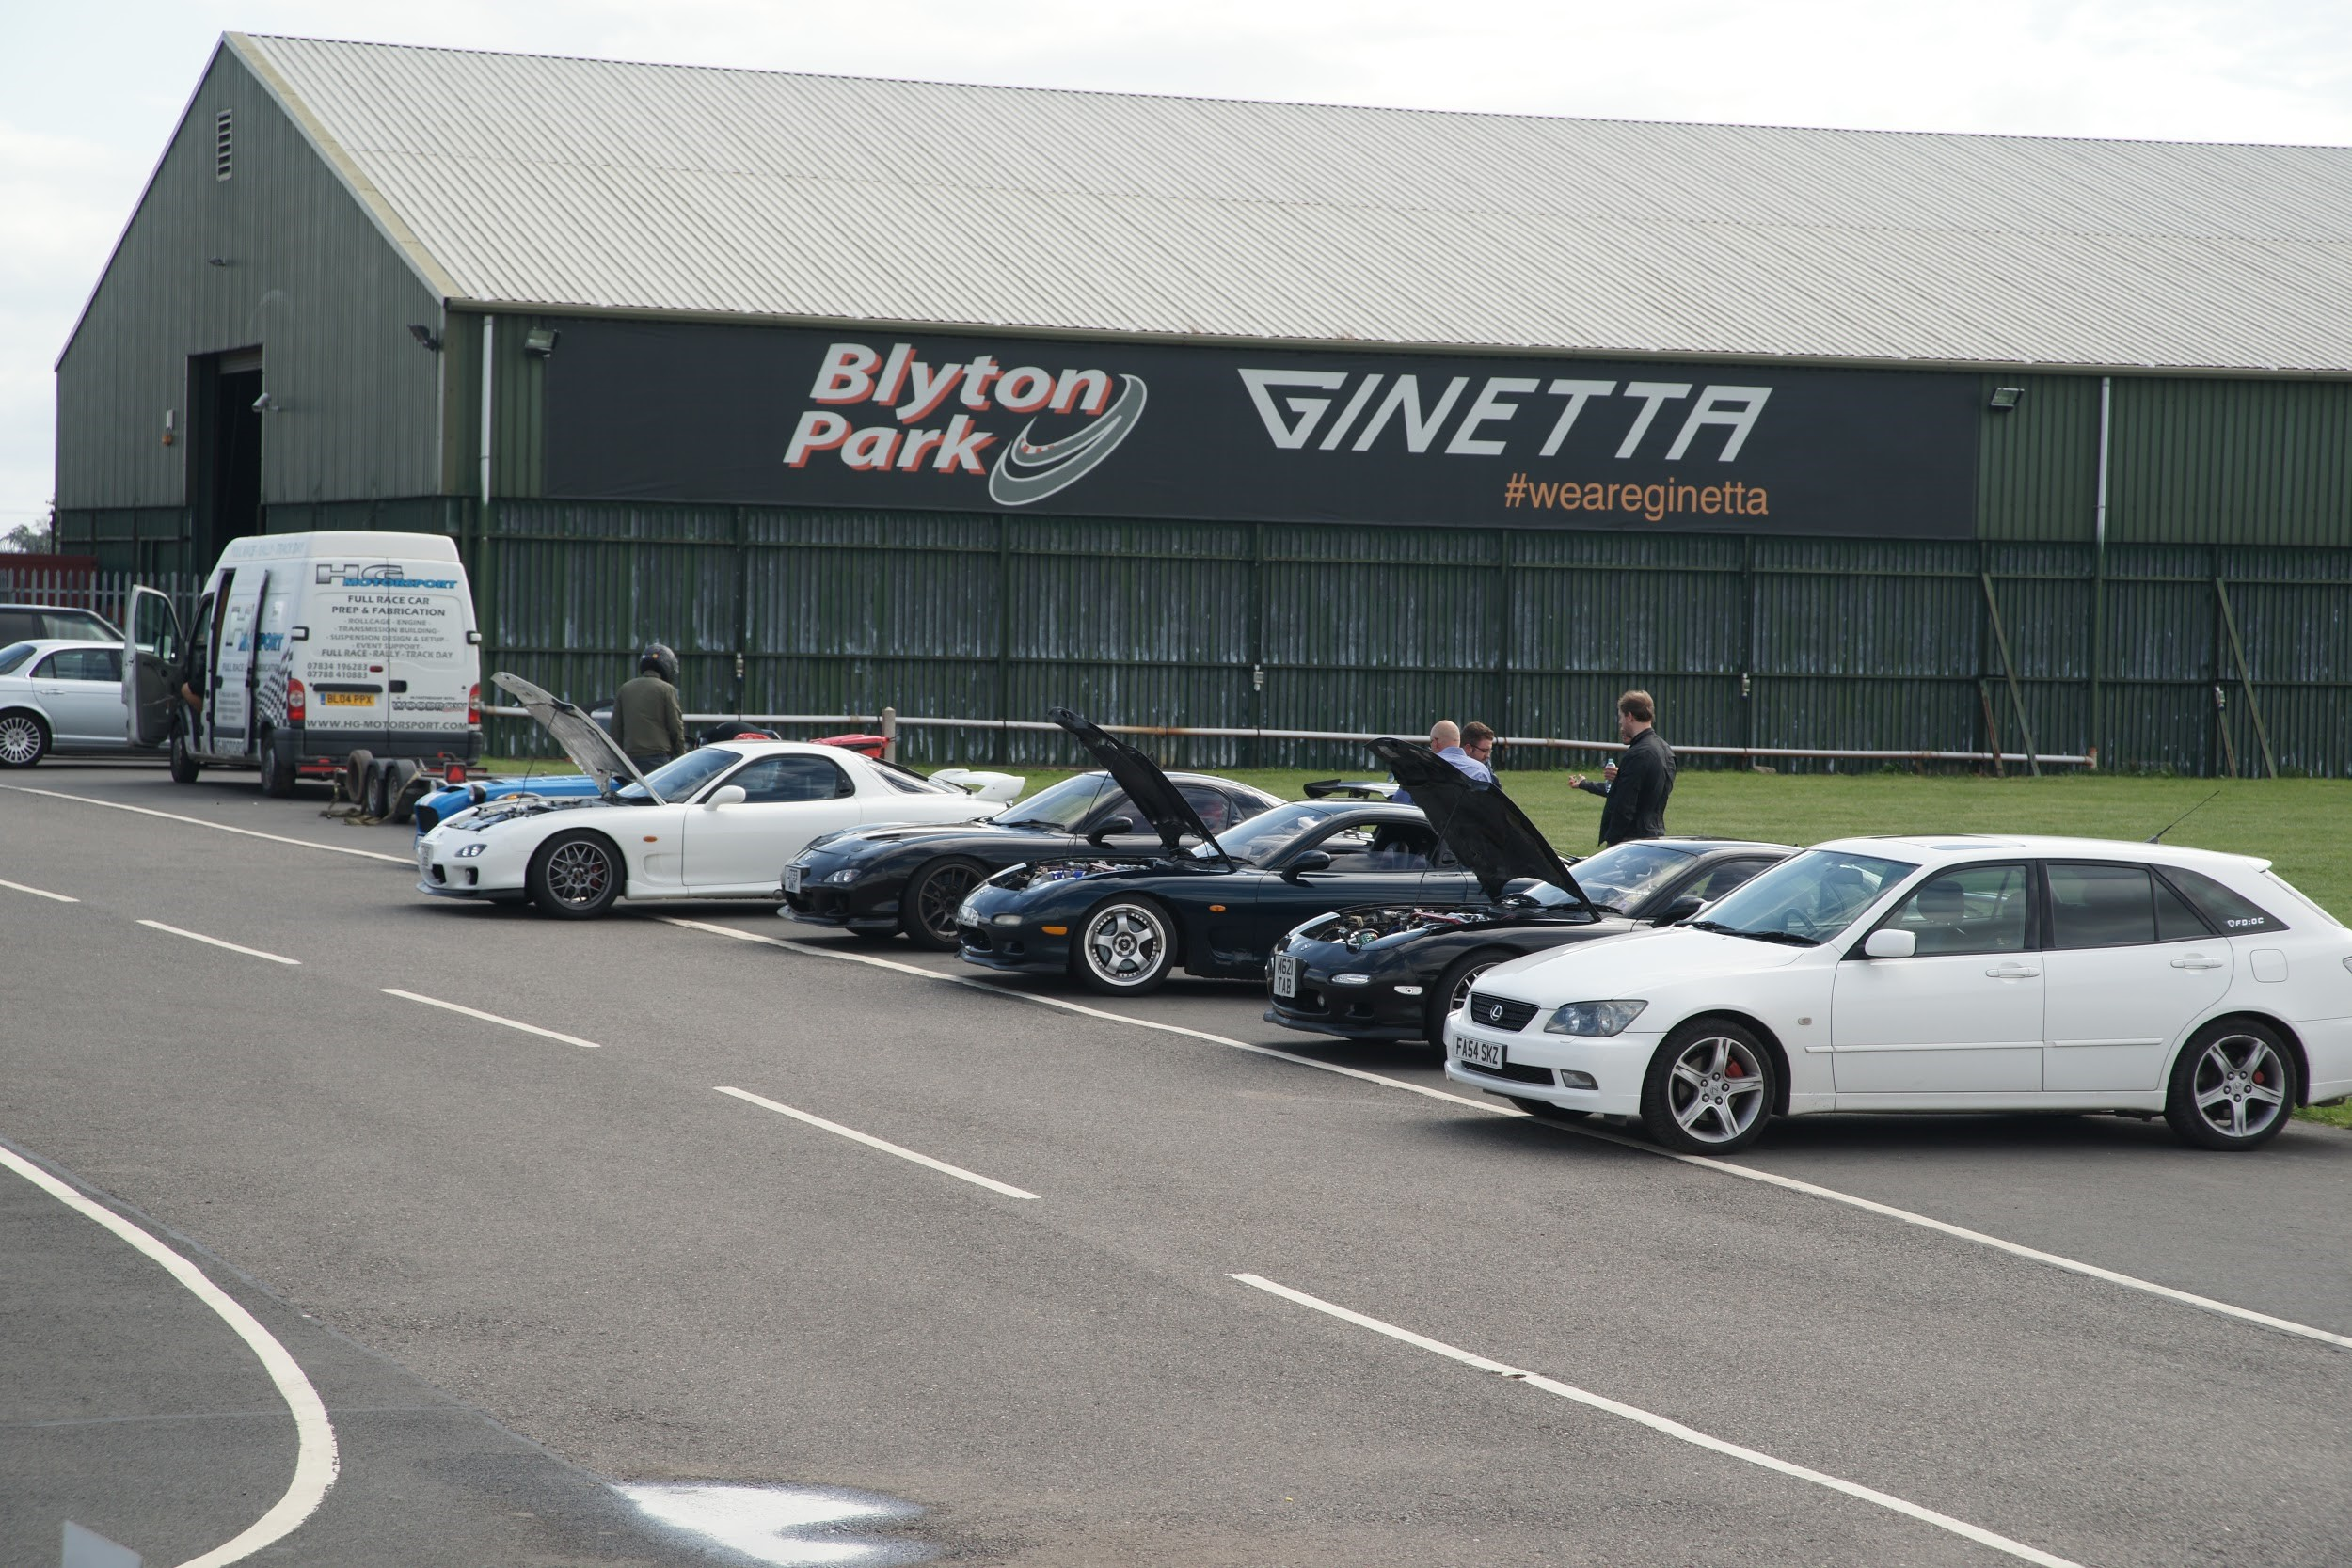 Mazda FD's at the track